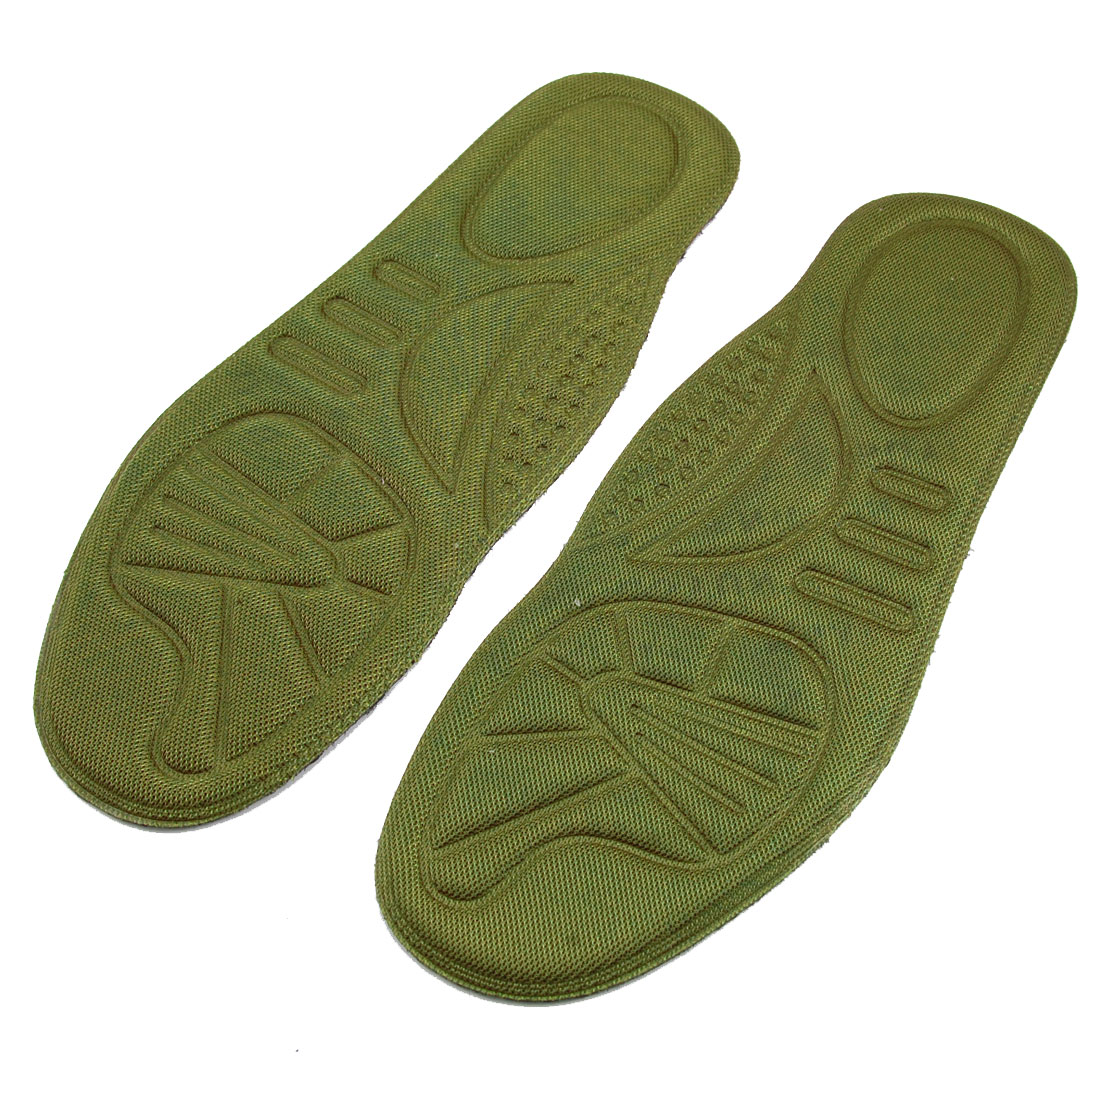 Pair Sweat-absorb Nonslip Design Shoe Pad Insole Army Green Black EU 40.5 for Men